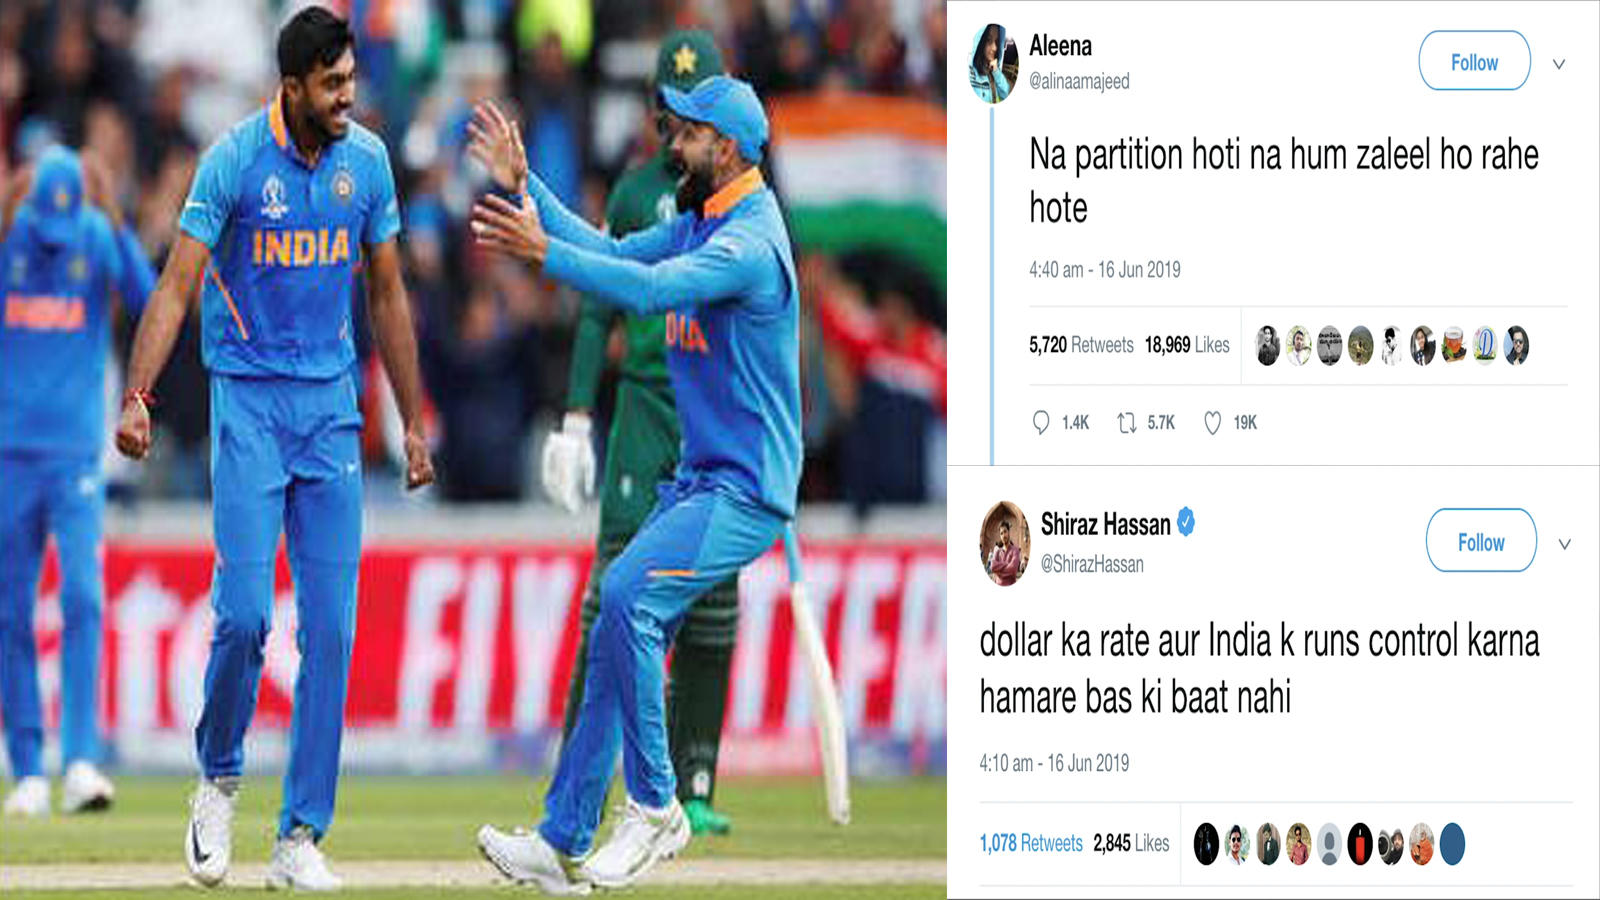 icc-world-cup-2019-fans-troll-pakistan-after-humiliating-loss-to-team-india-in-old-trafford